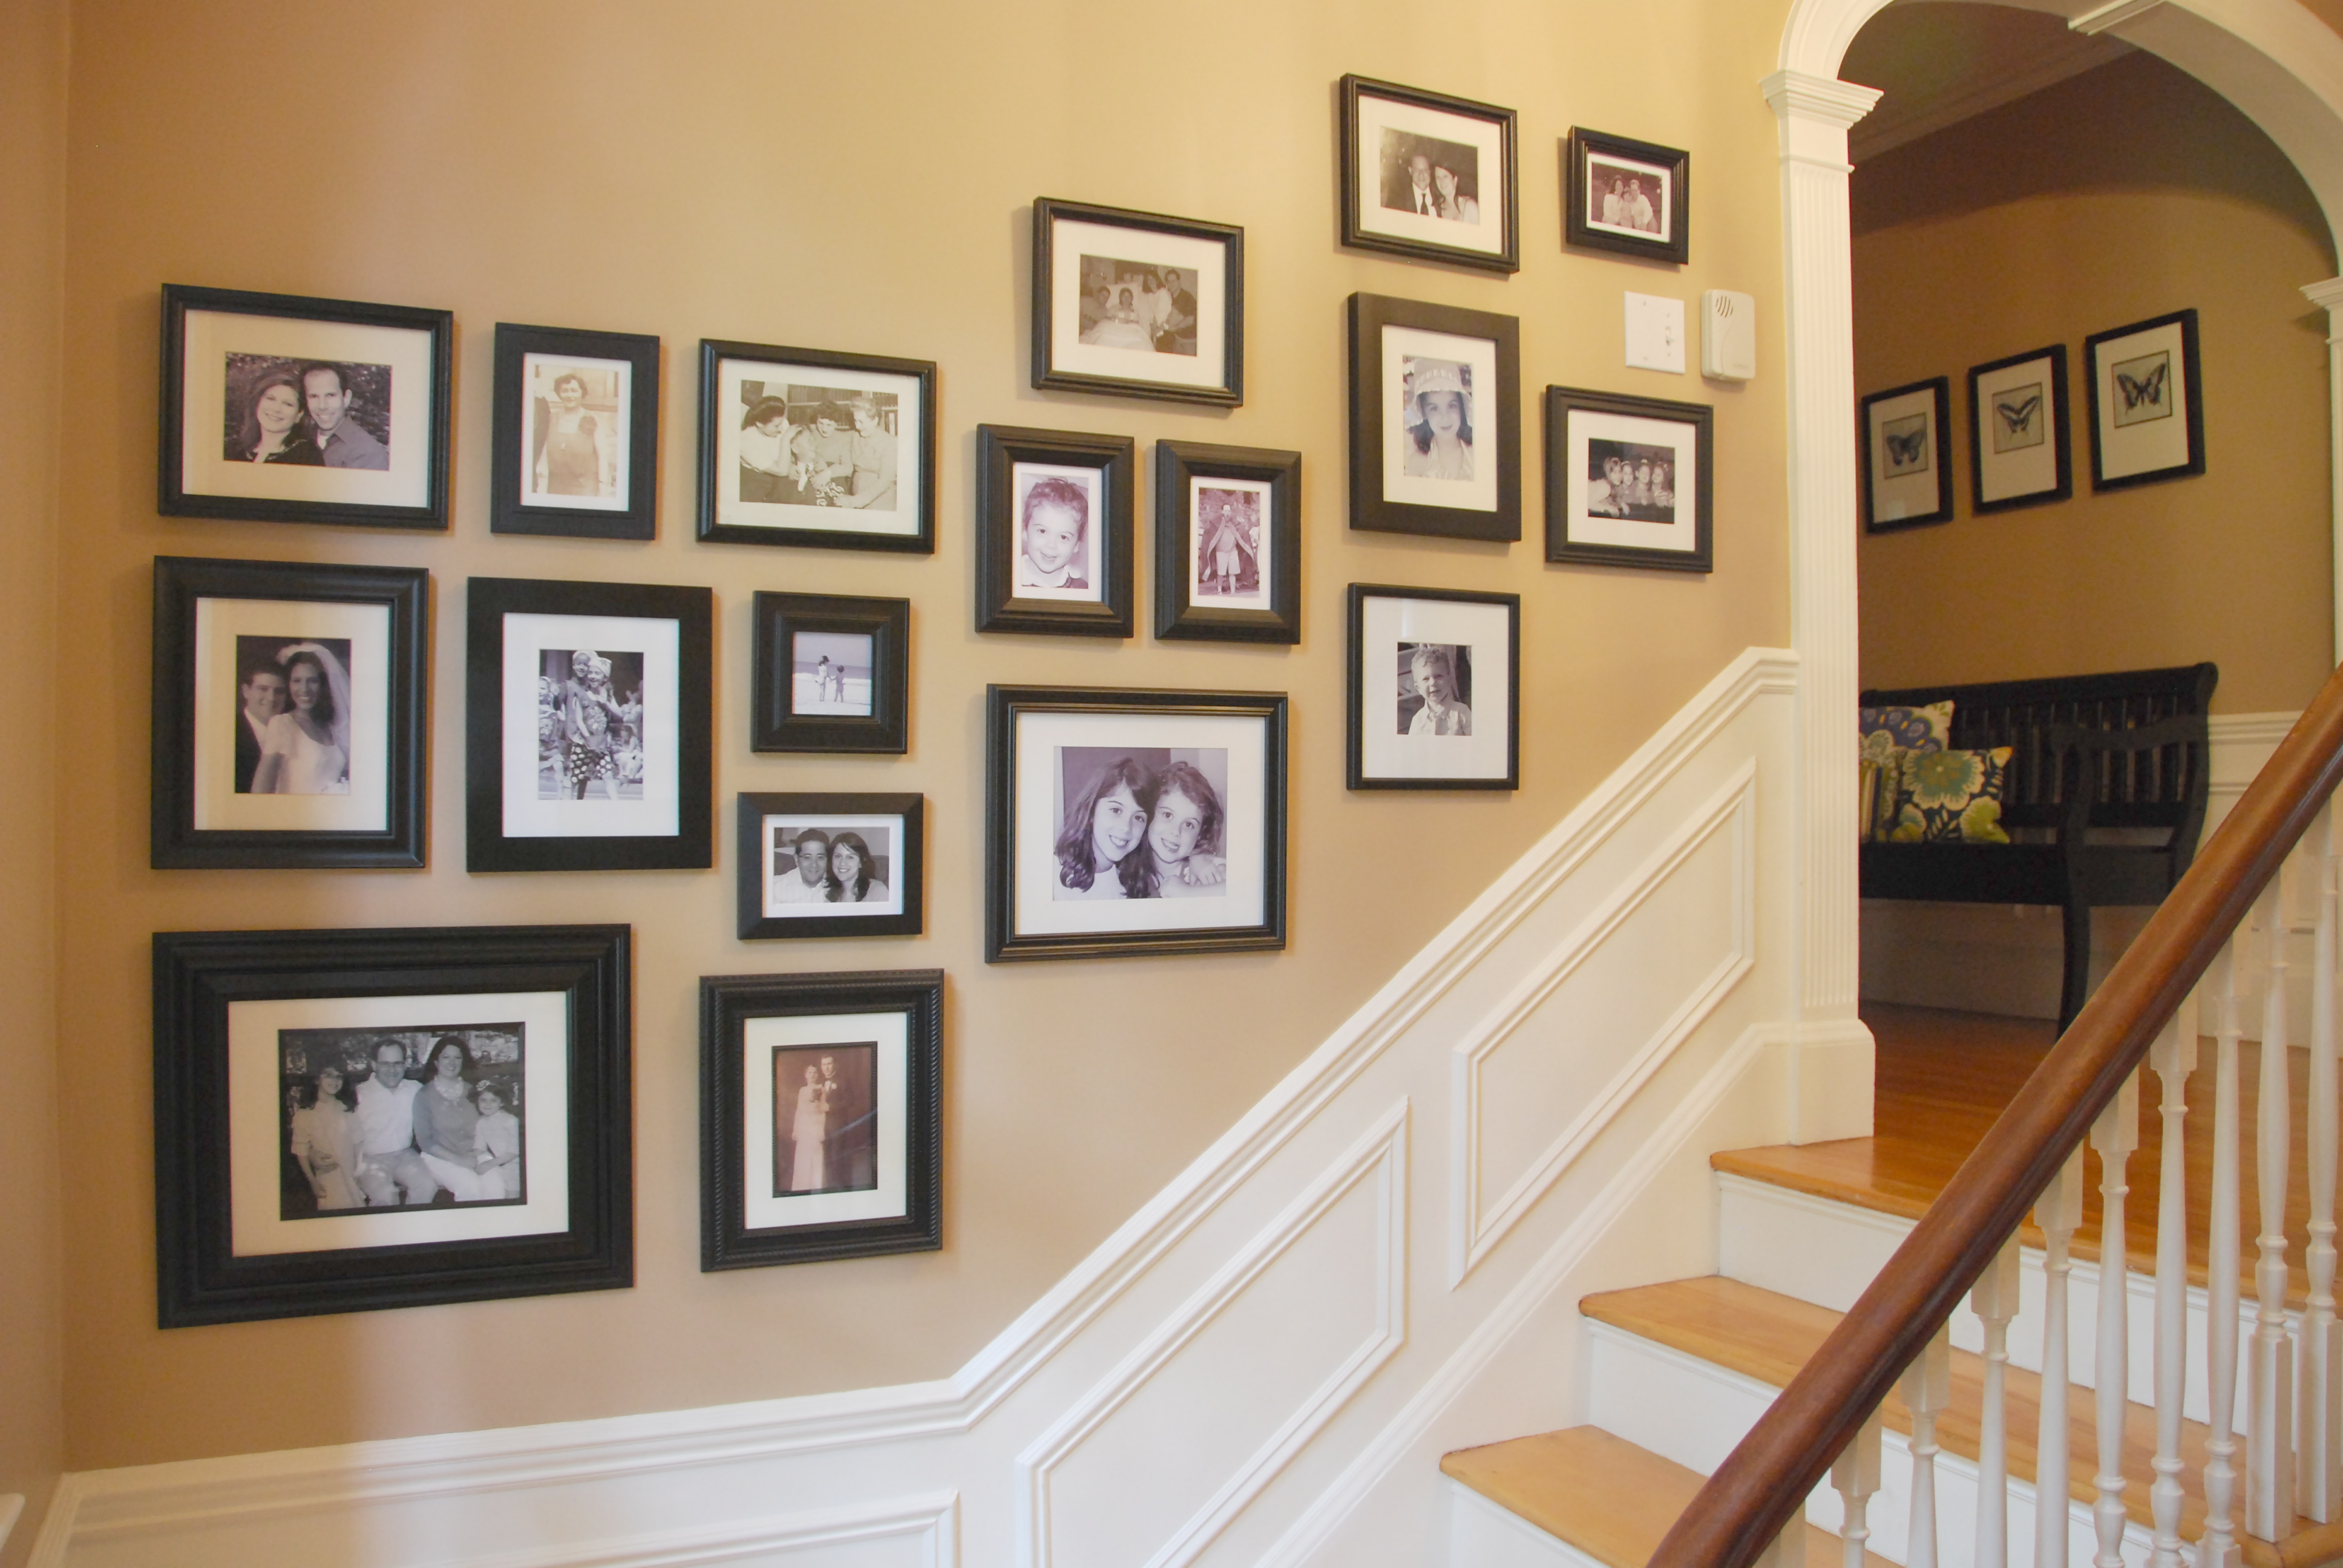 Frugal home design inspiration and ideas decorating with for Frugal home designs